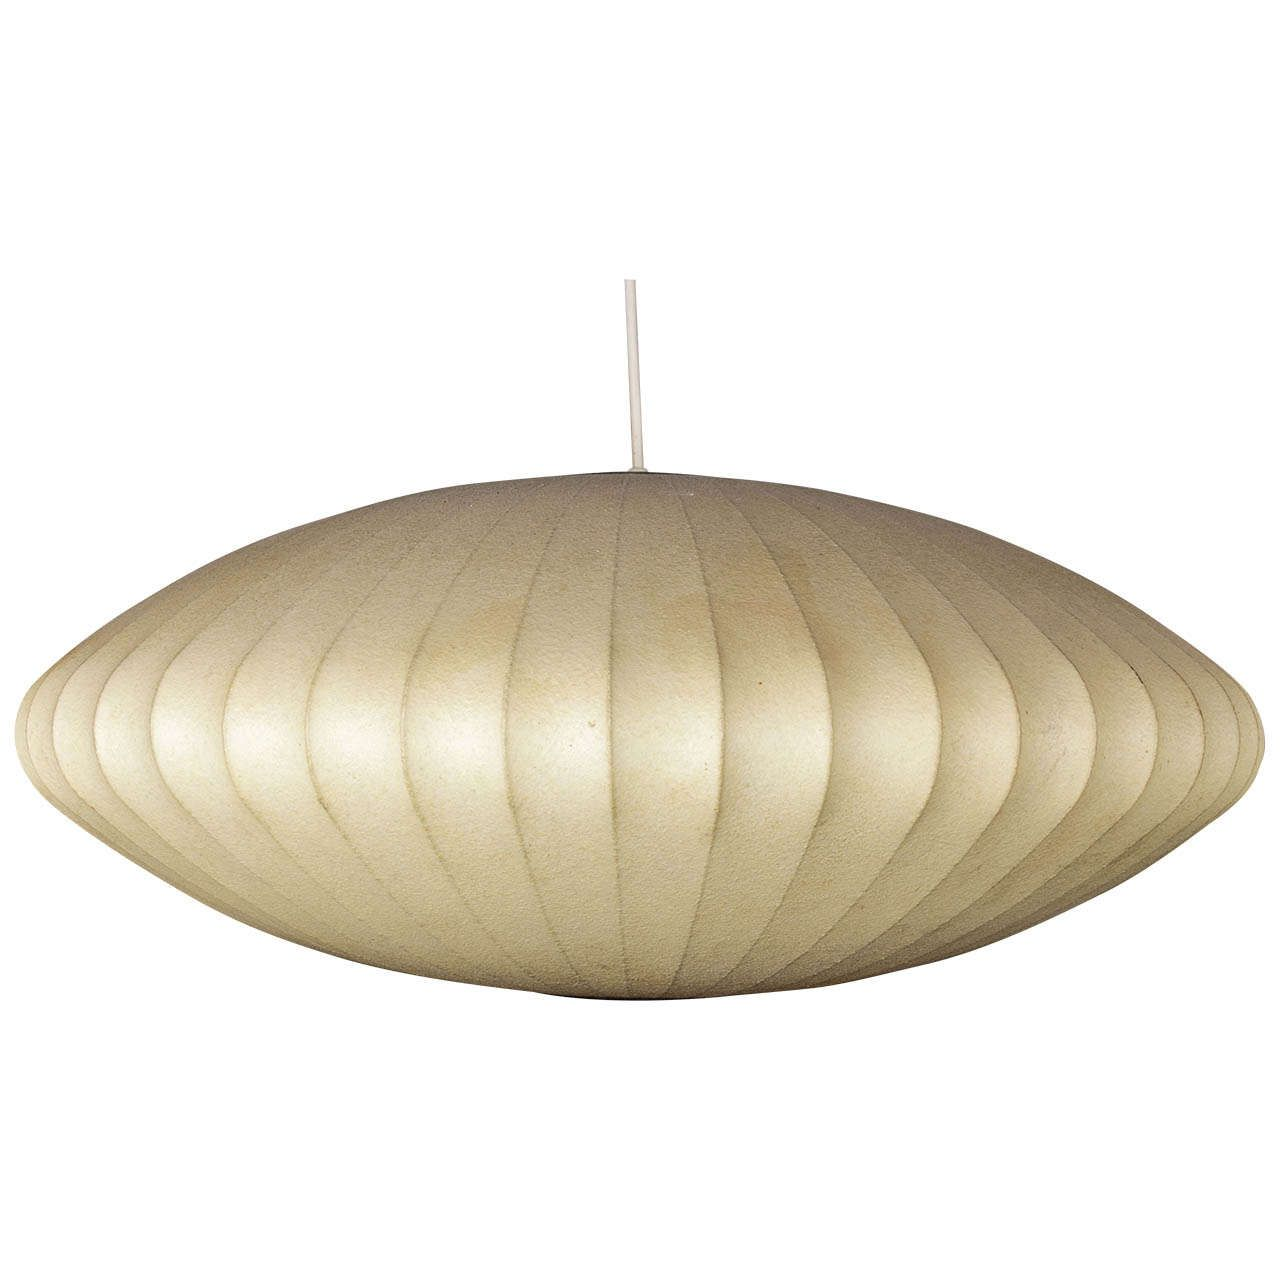 Nelson Saucer Shaped Fiberglass Bubble Lamp